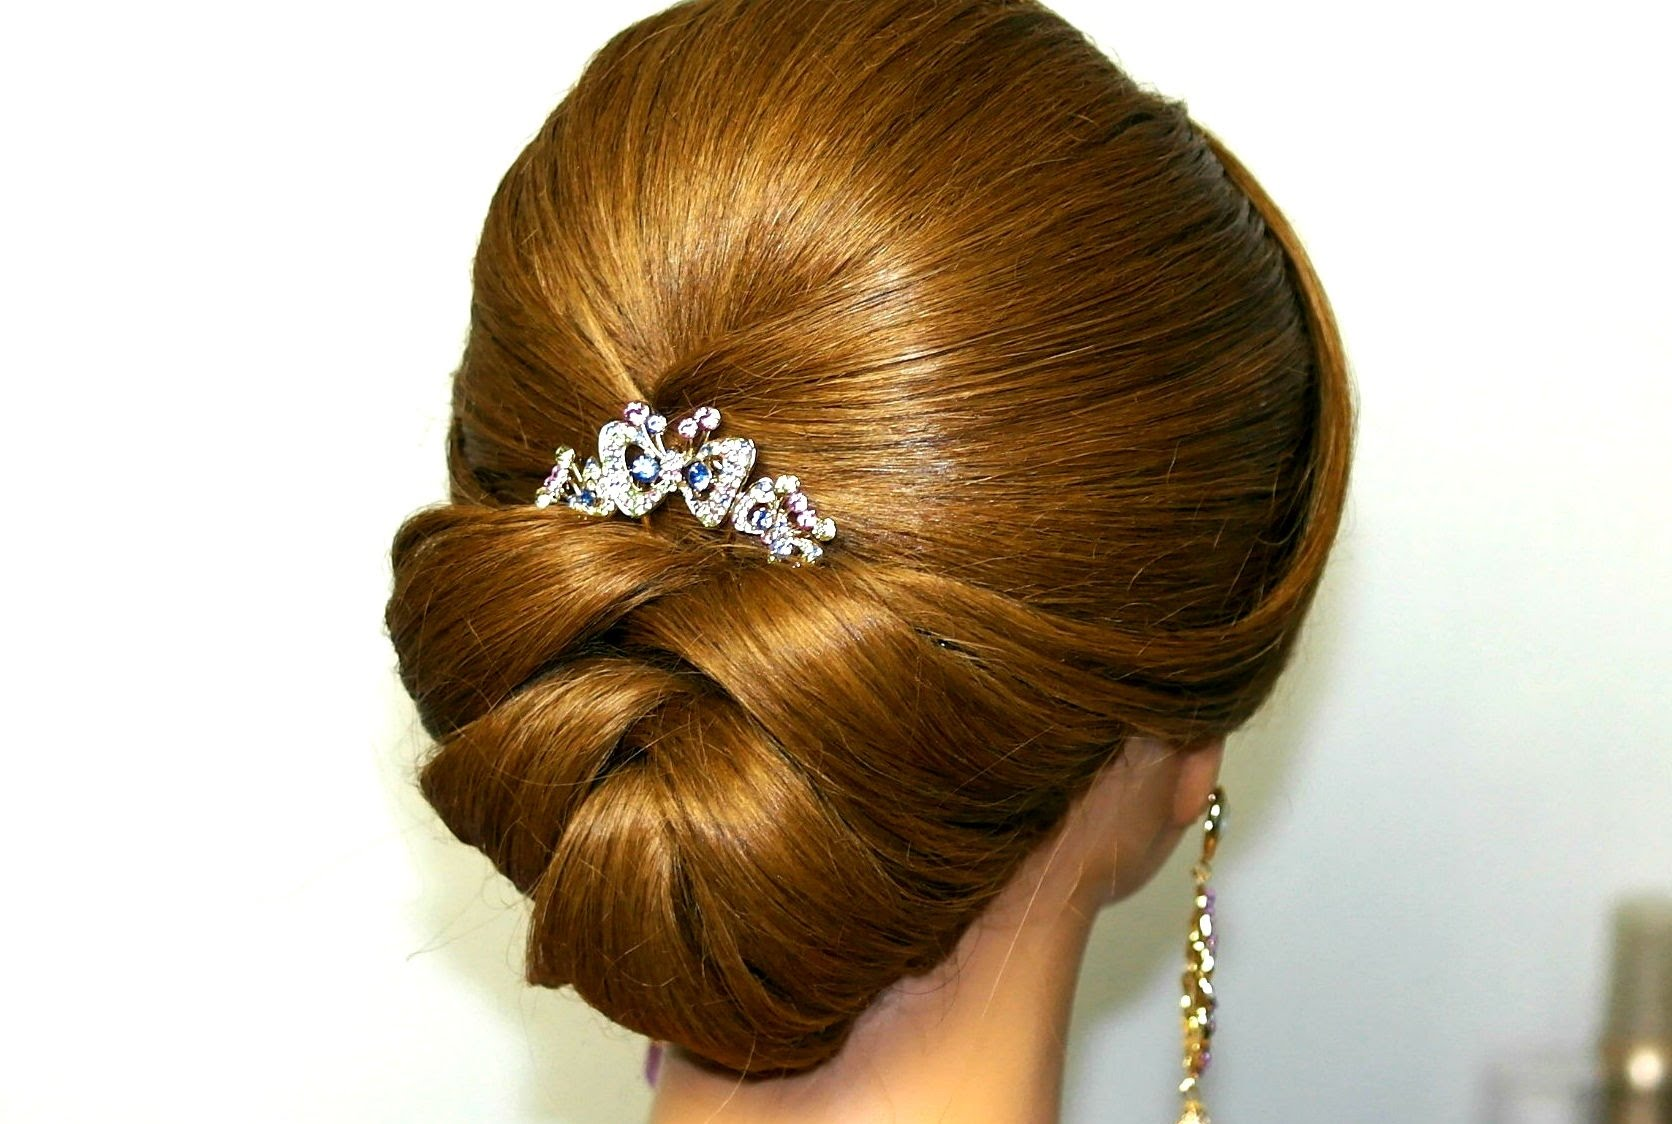 Bridal Updo Wedding Hairstyles